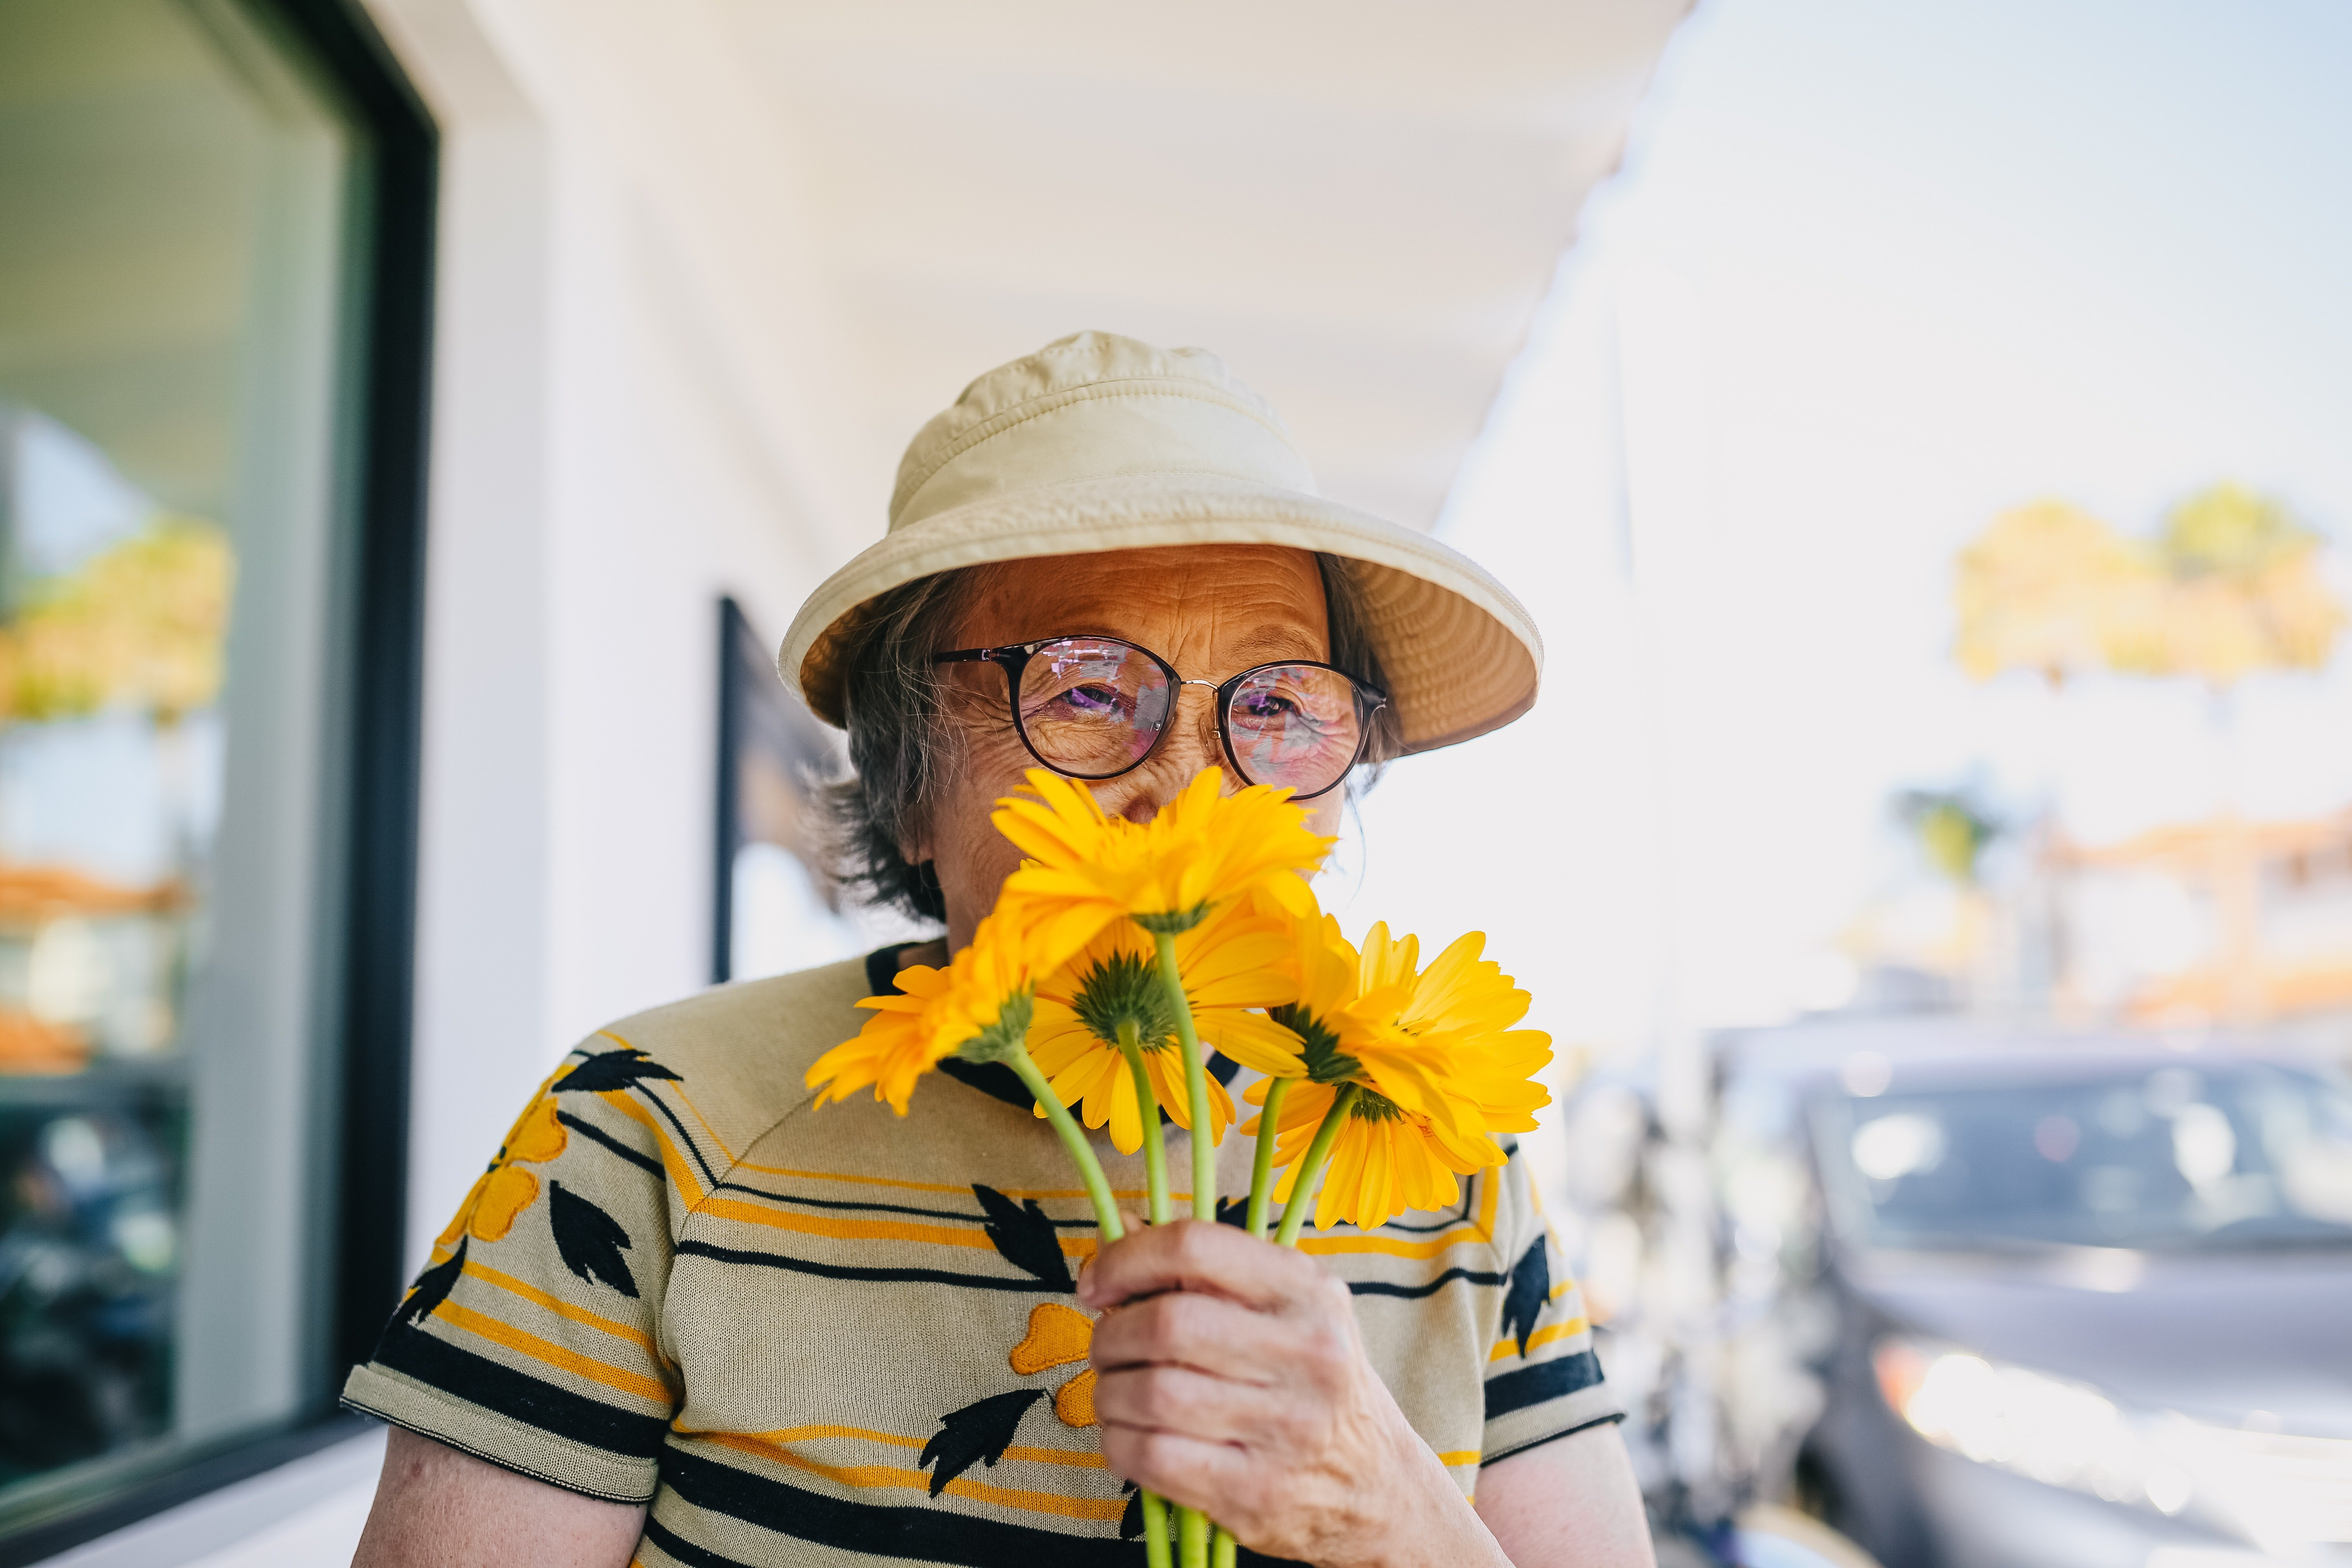 I was shocked to see Mrs. Rose at the hospital with a bouquet   Photo: Pexels